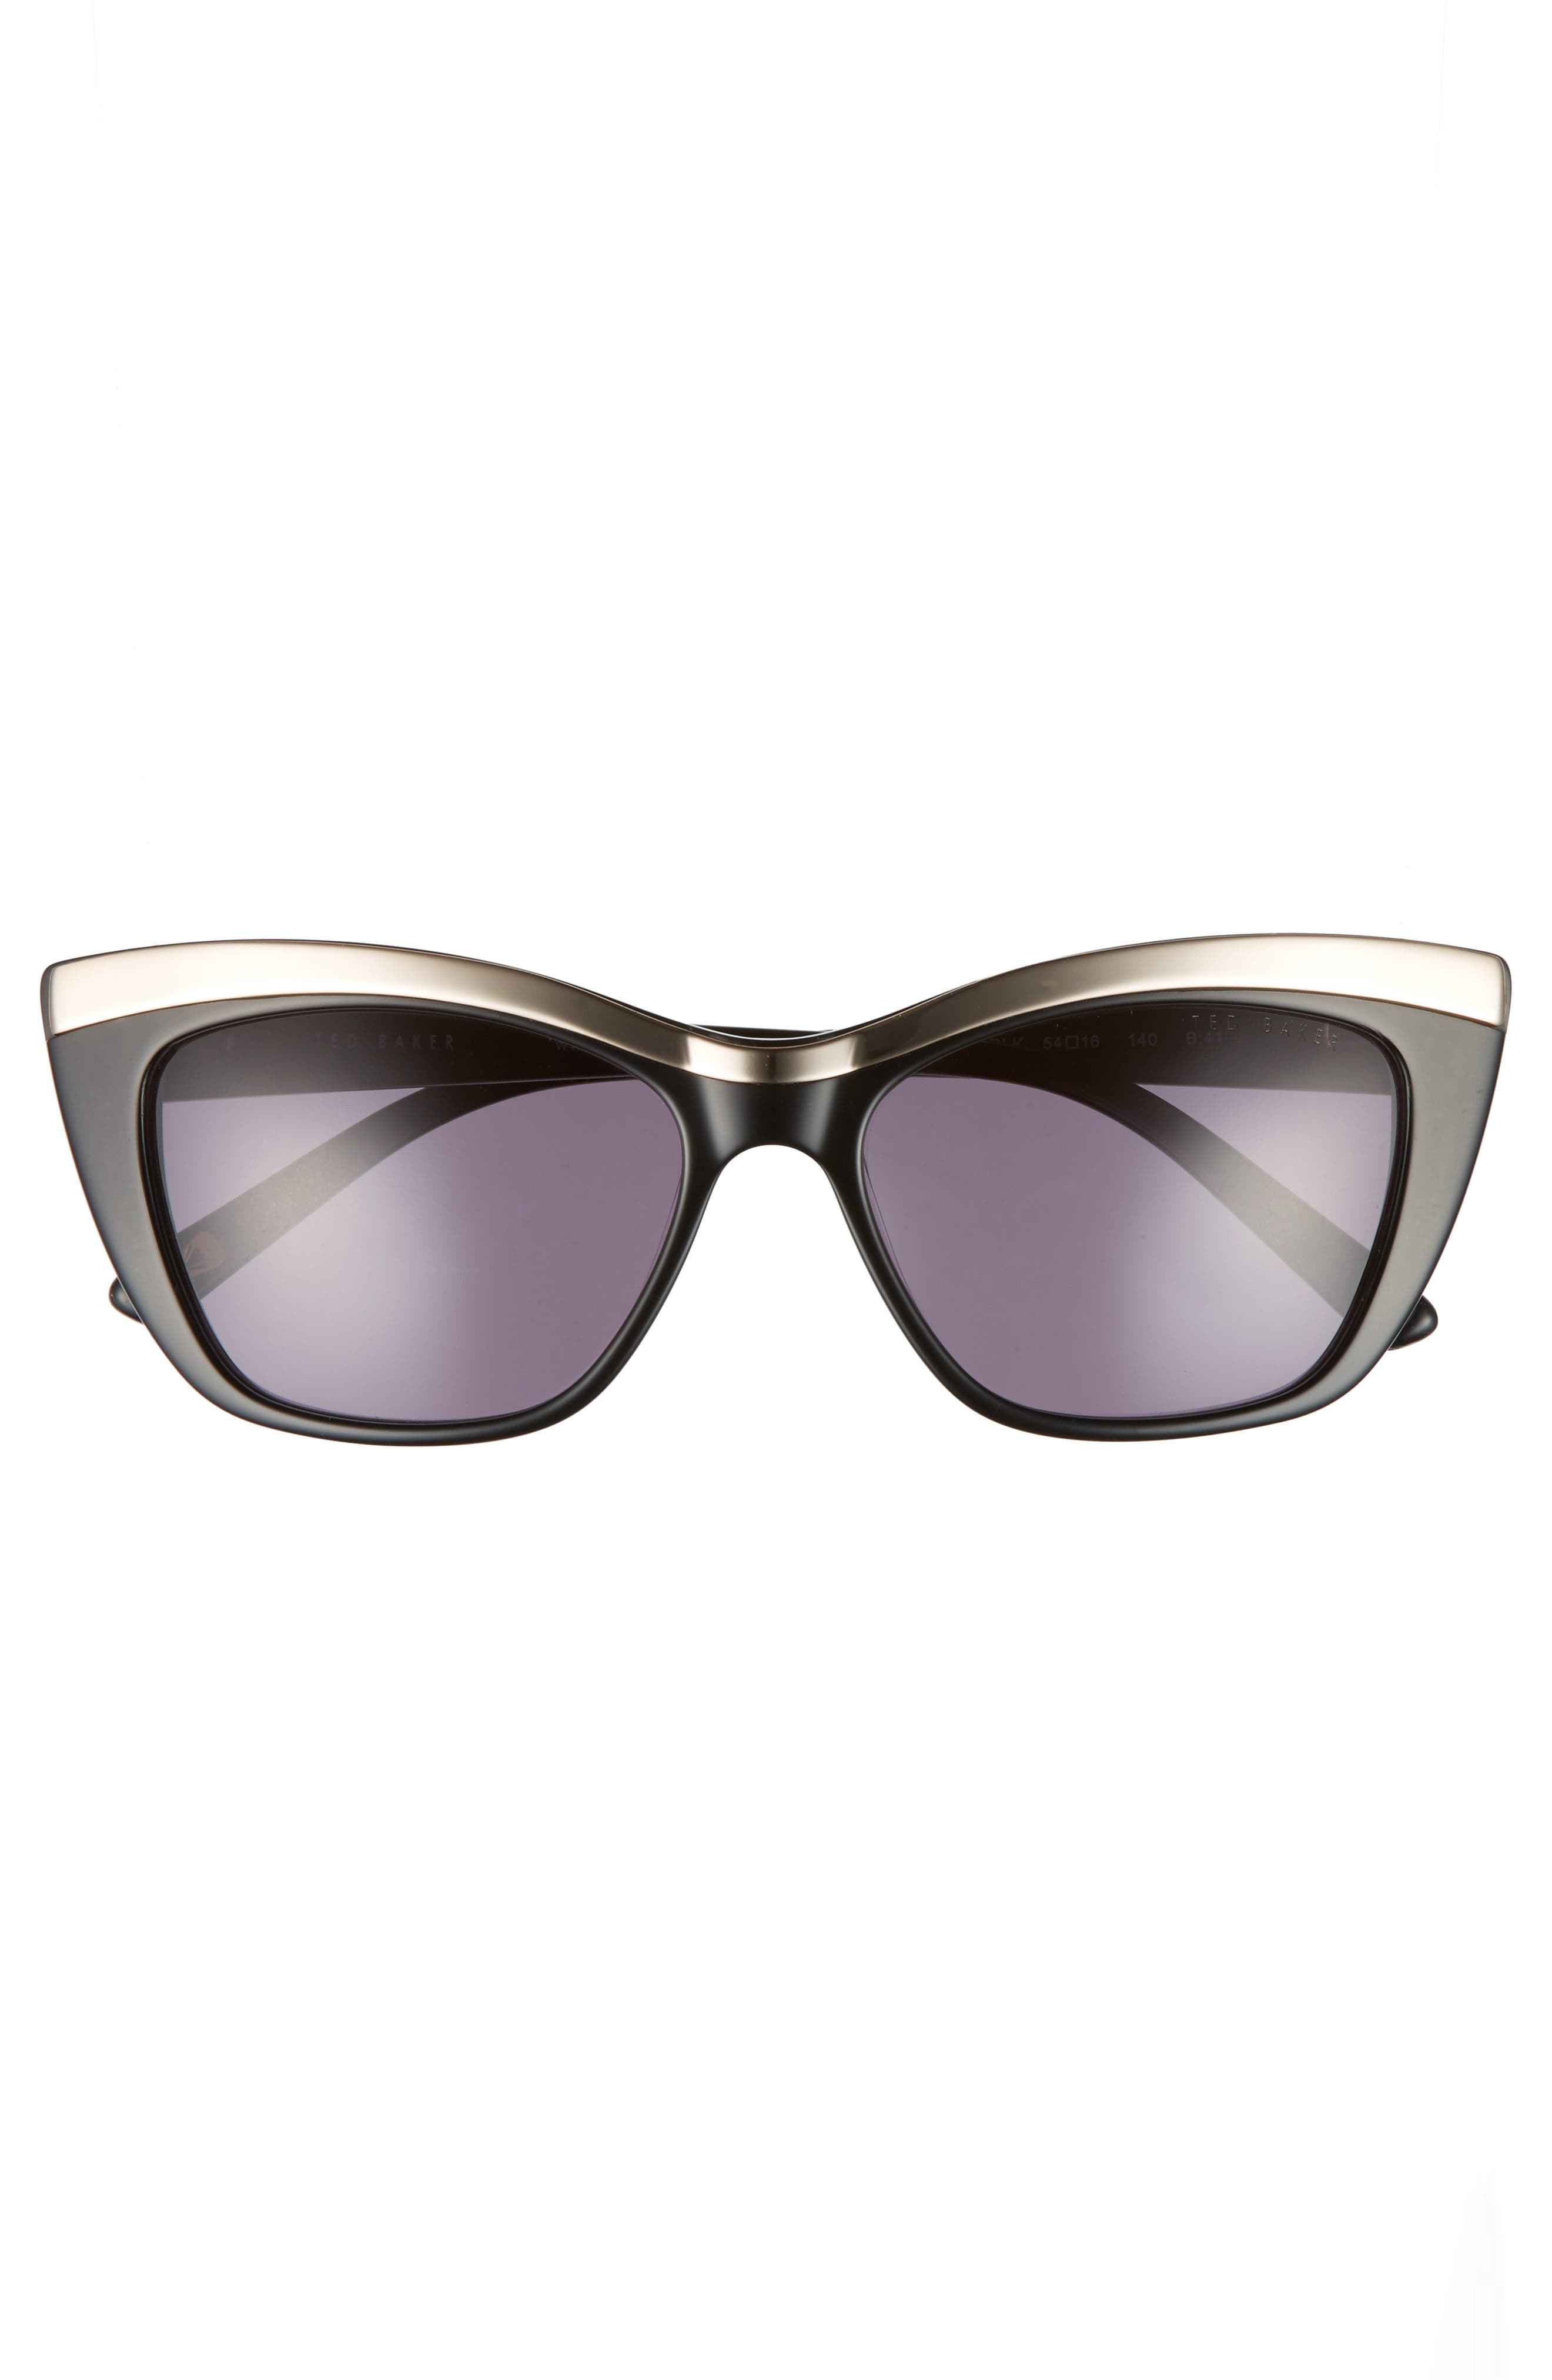 54mm Rectangle Cat Eye Sunglasses,                             Alternate thumbnail 3, color,                             001